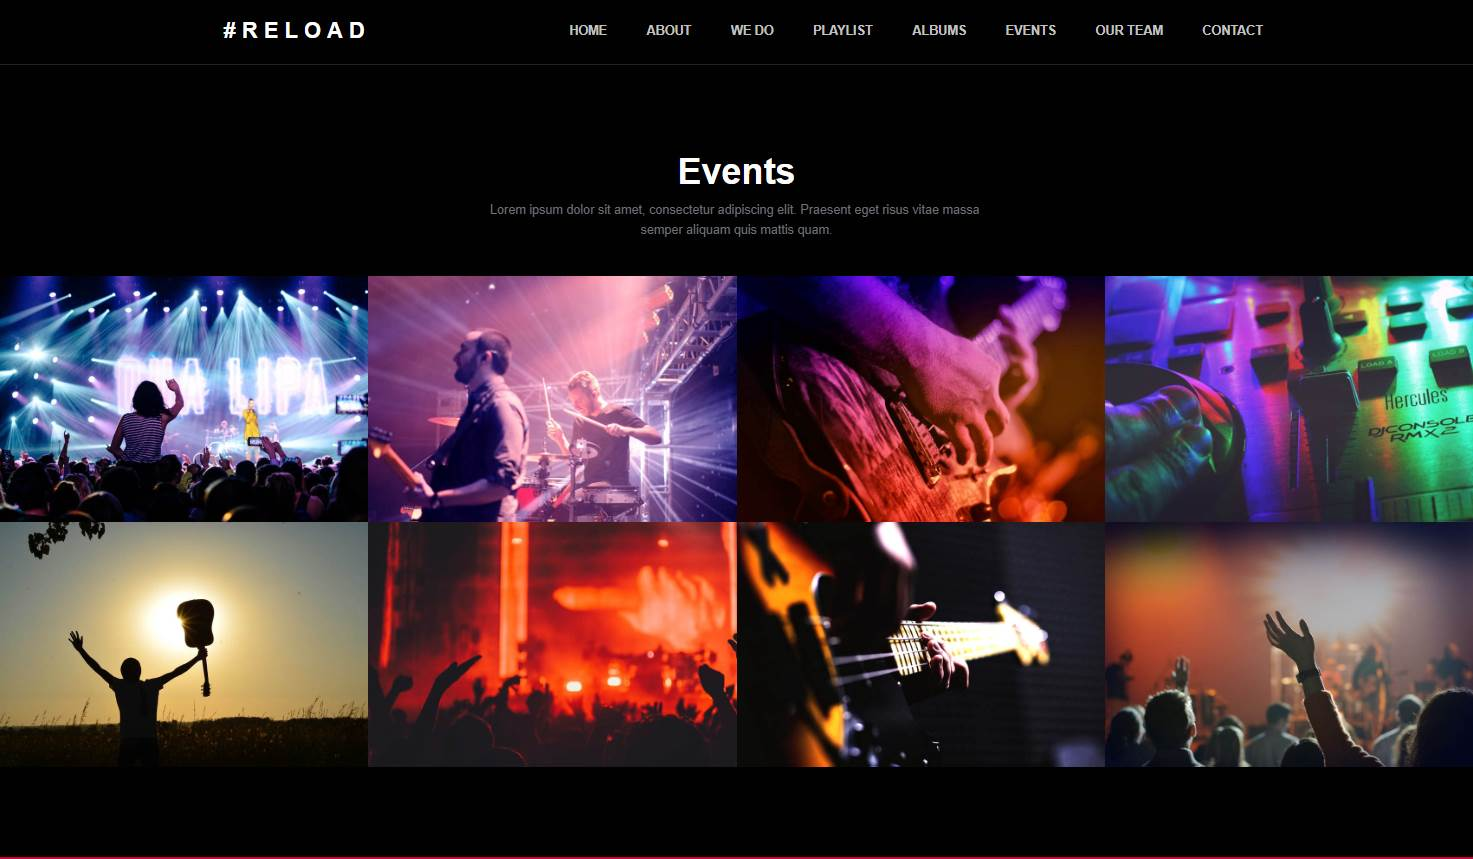 Reload: A Music Event Bootstrap HTML Template